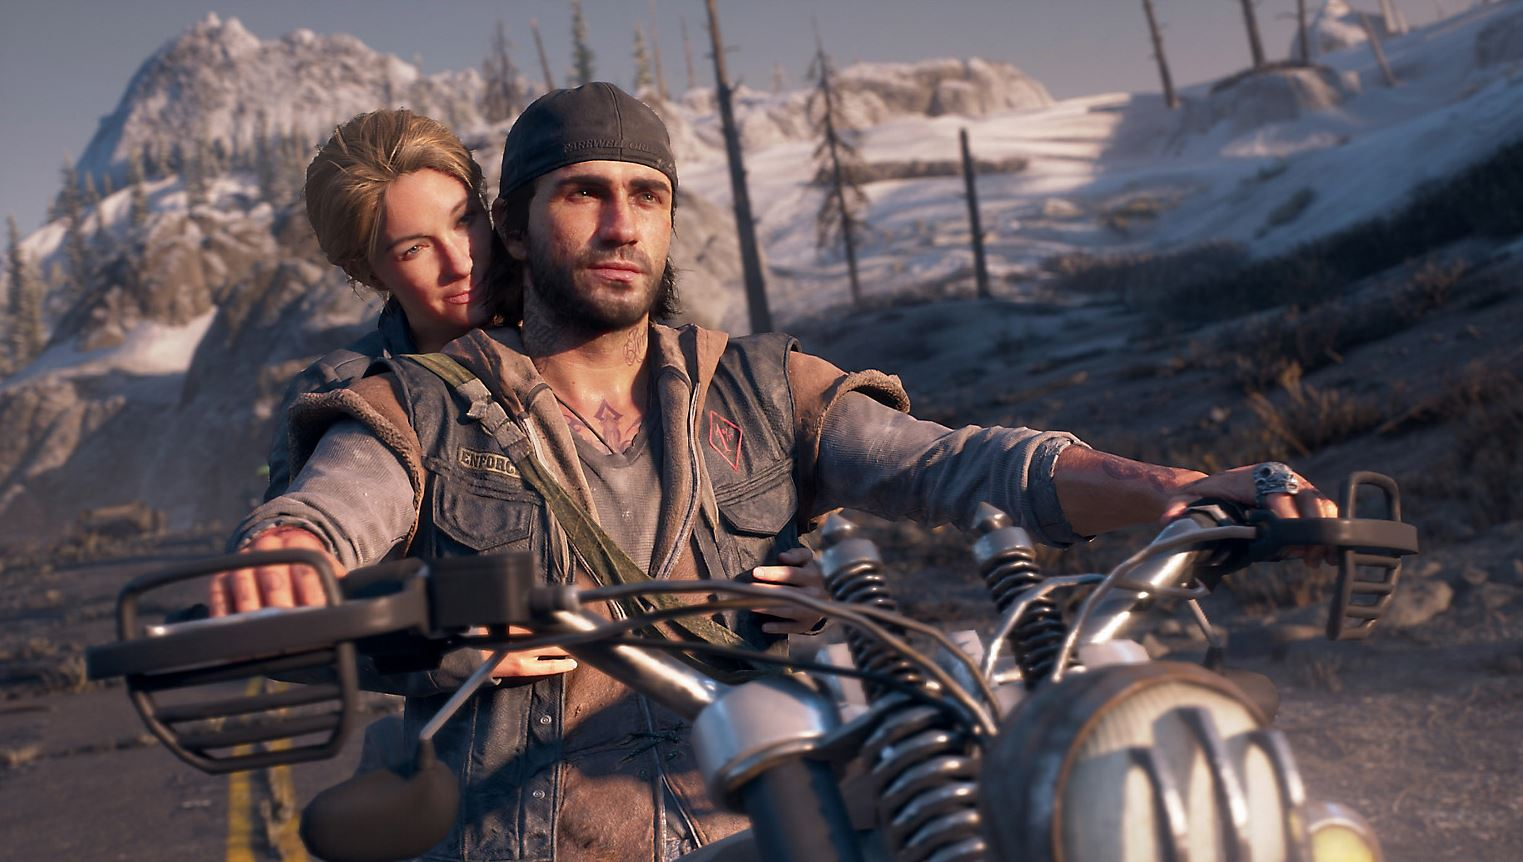 days-gone-pc-release-date-confirmed-for-may-features-ultra-wide-monitor-support-and-various-display-options